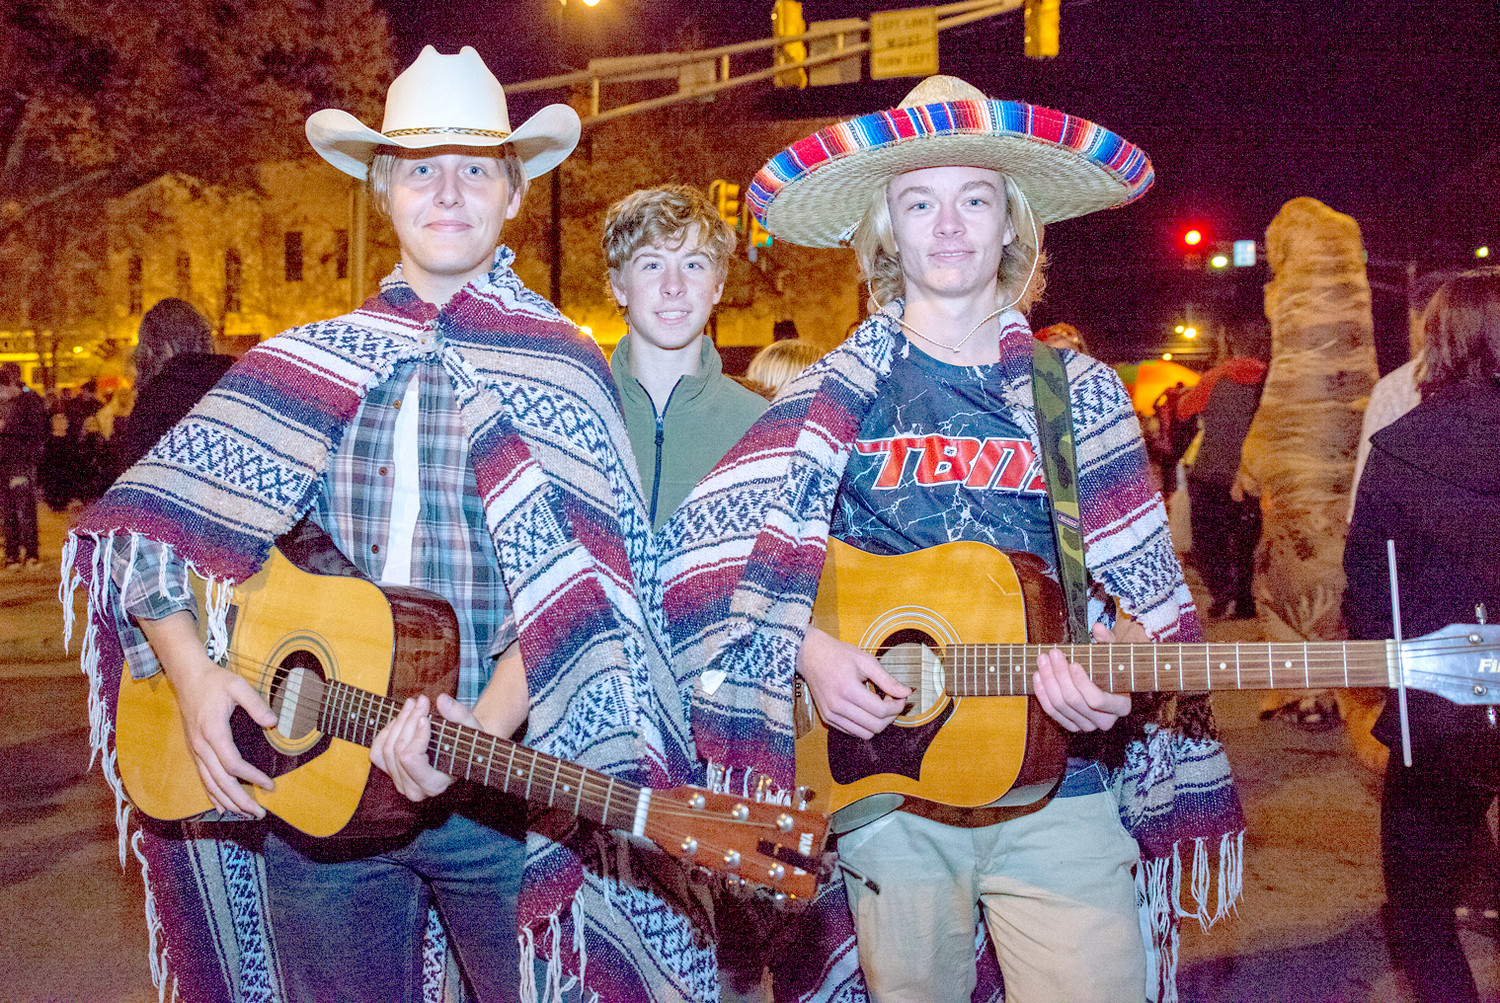 ONE UNIQUE GROUP at the Block Party was this mariachi band.  From left are Jeremiah Rosenbrook, Dakota Whittaker and Patrick McMinn.